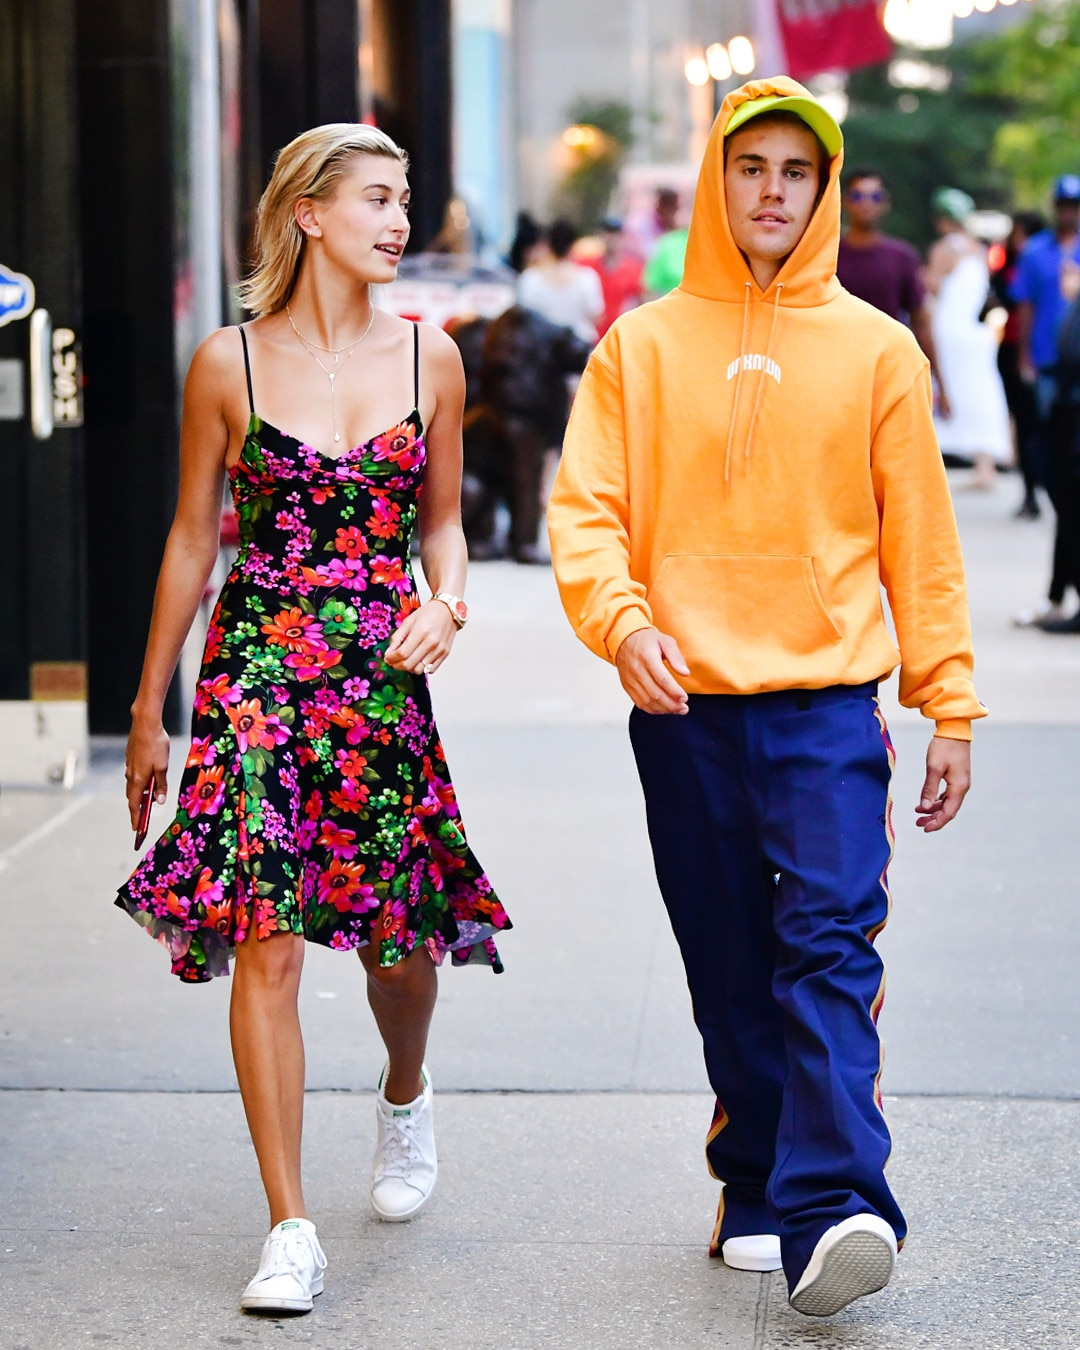 Why Justin Bieber Was Crying With Fiancee Hailey Baldwin